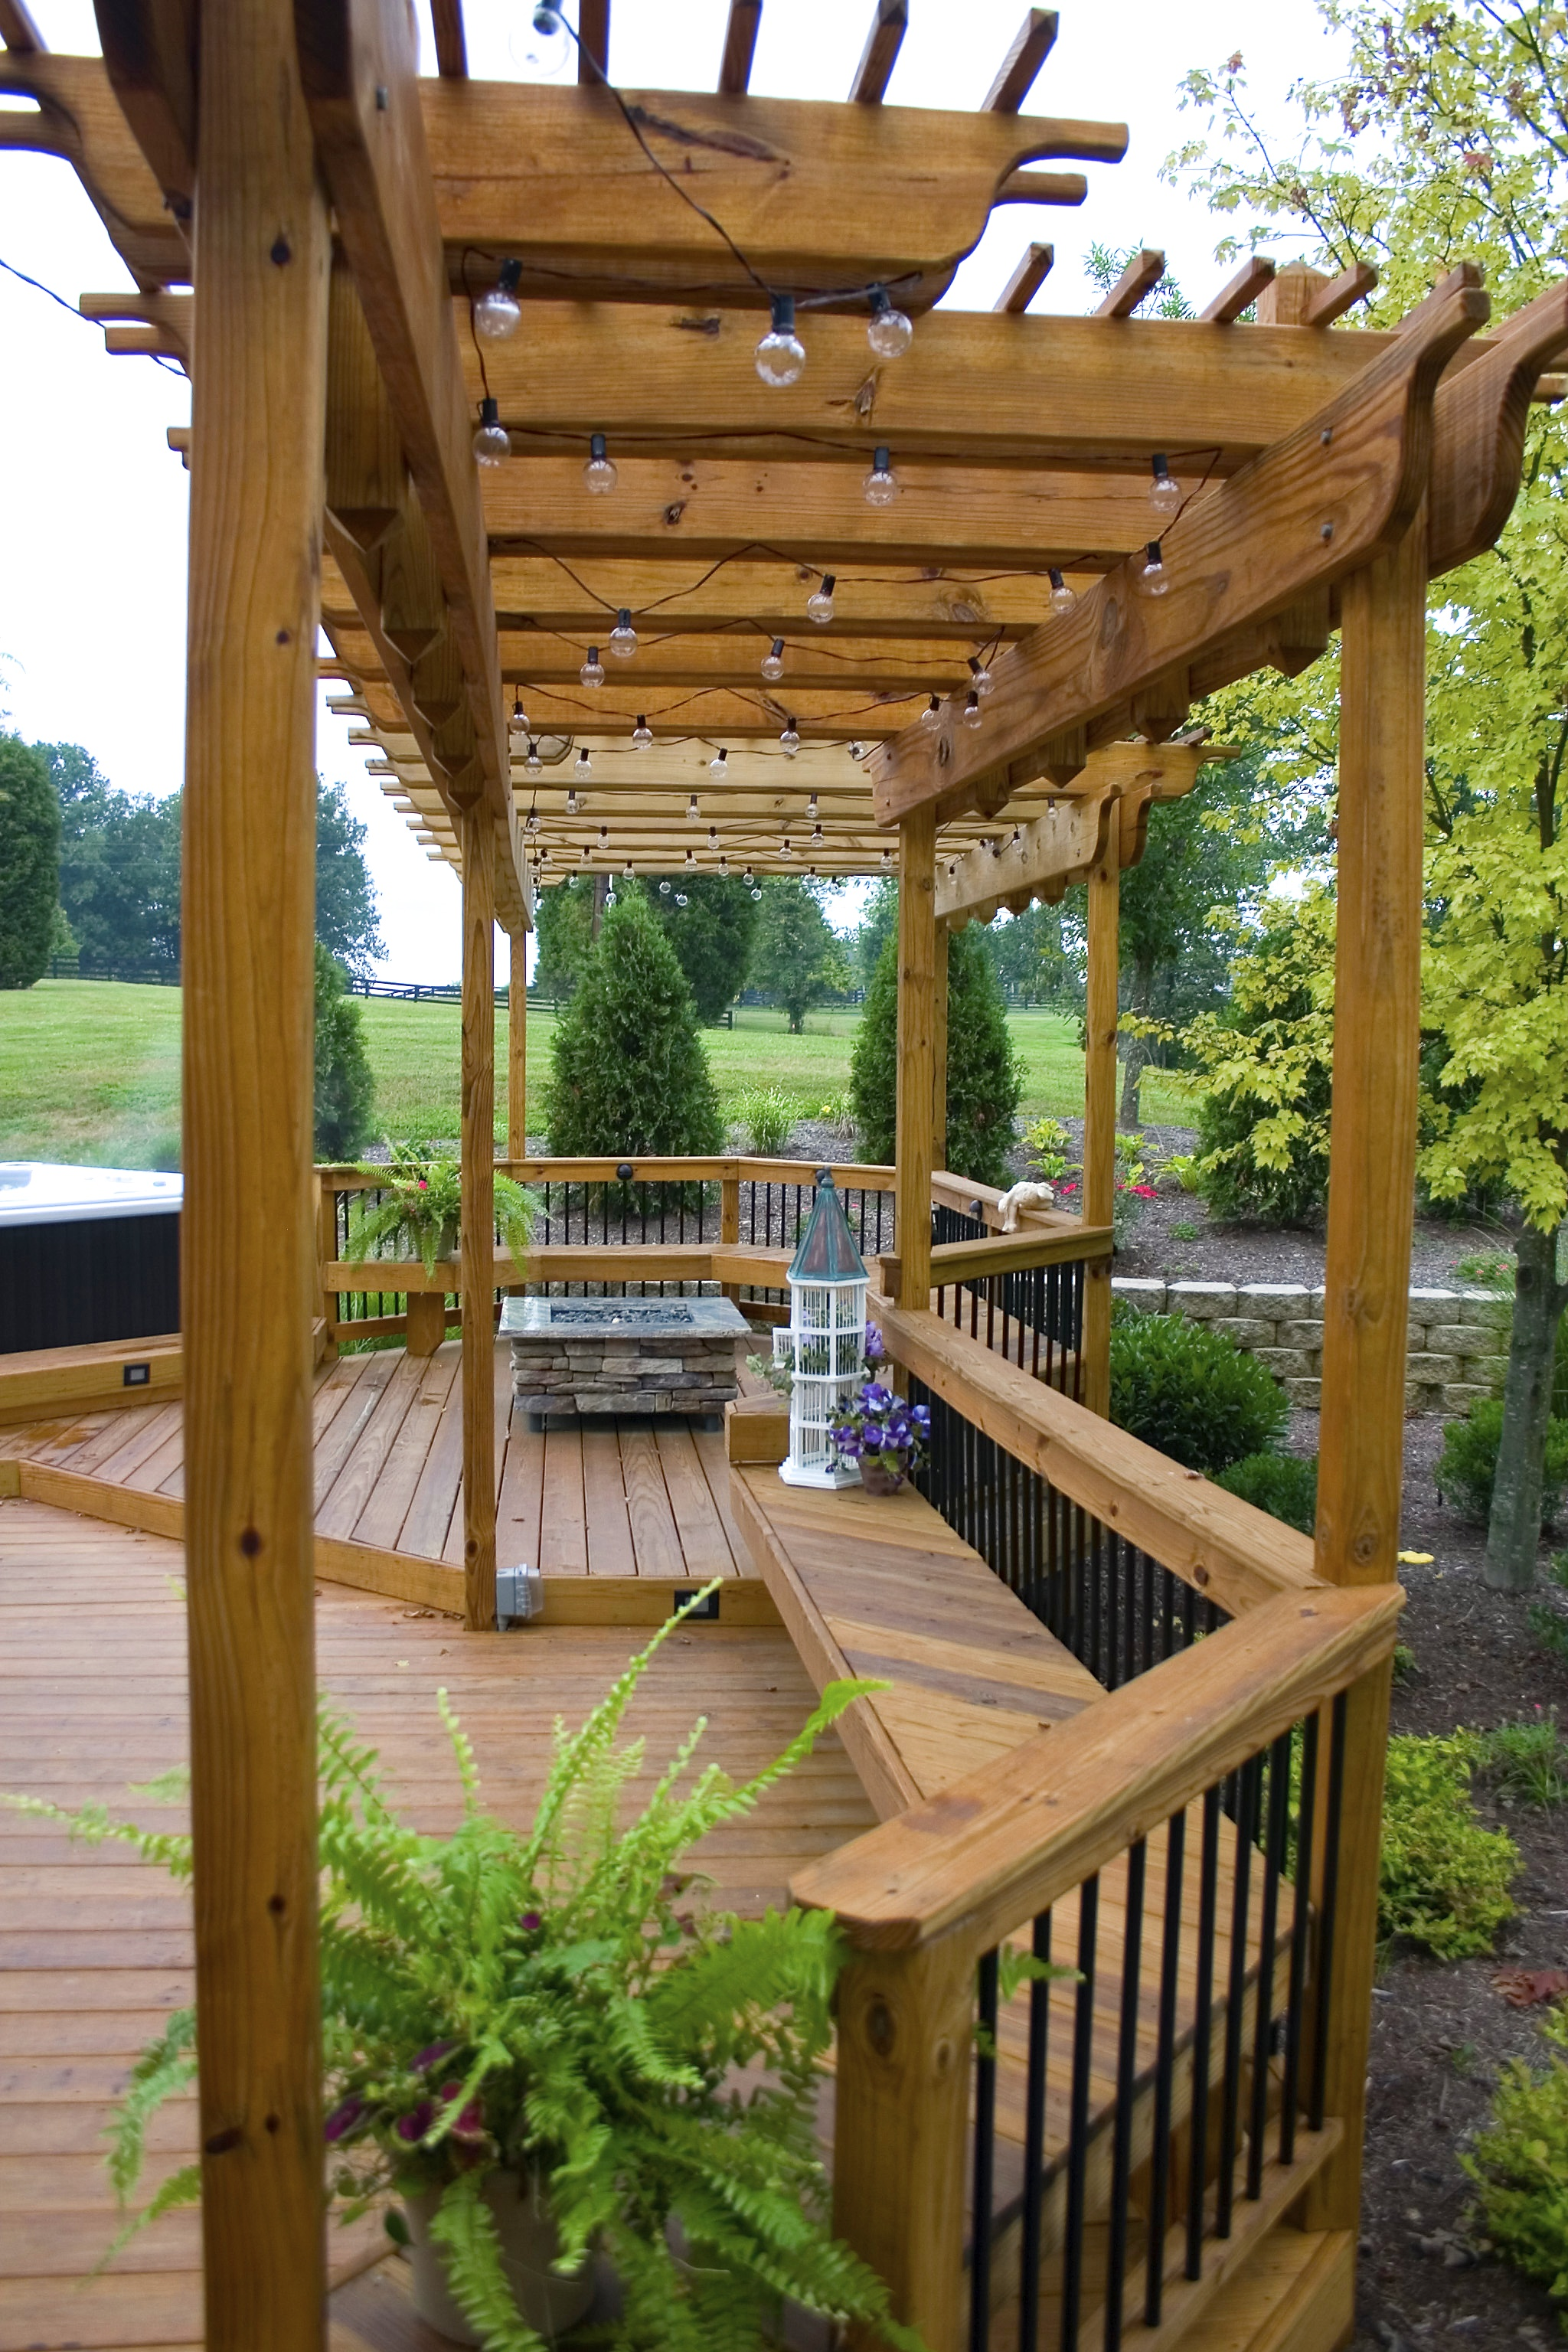 48 new patio vs deck graphics patio design central for Lanai structure